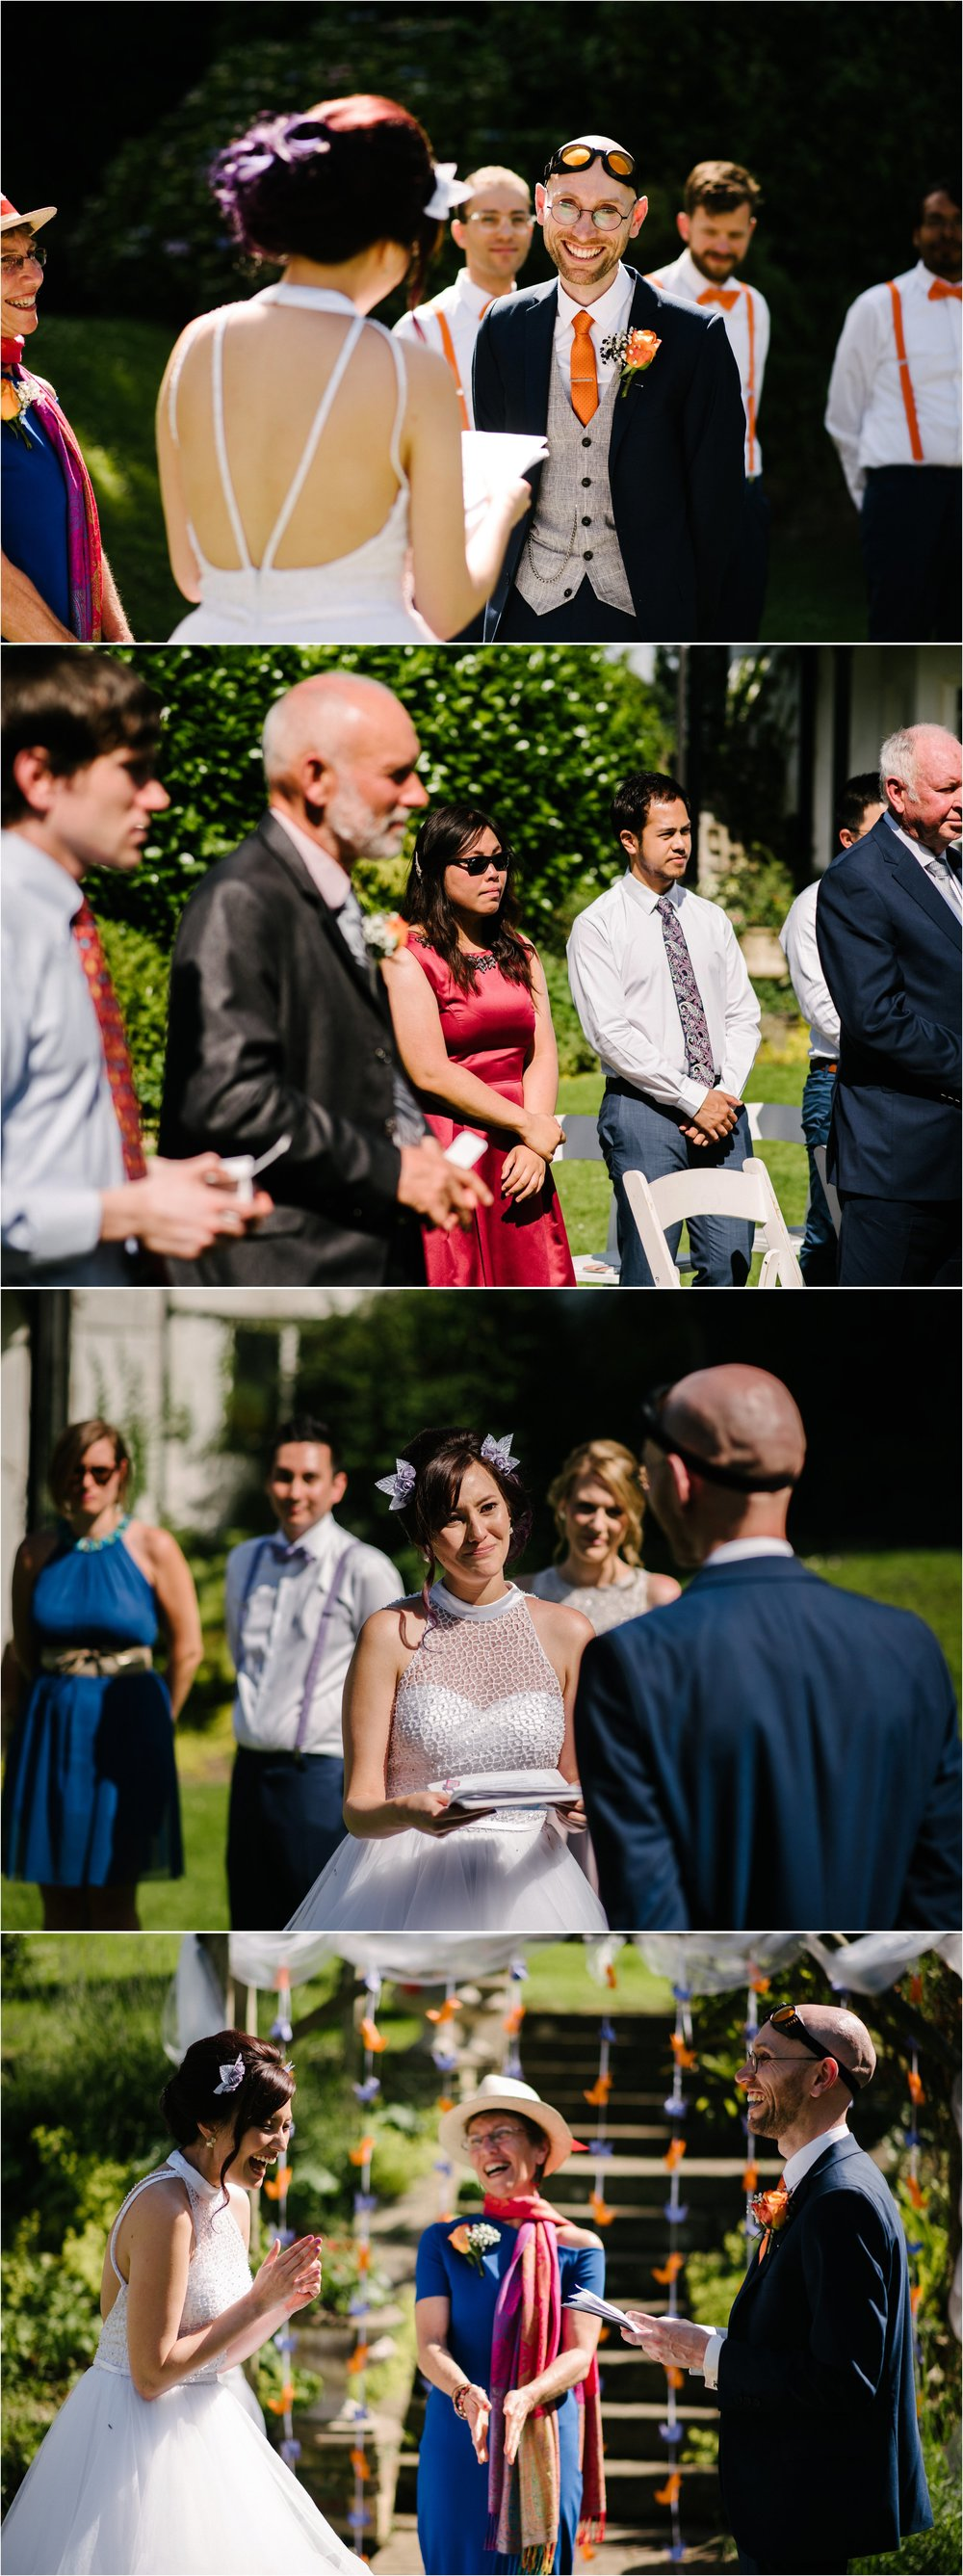 Devon wedding photographer_0145.jpg